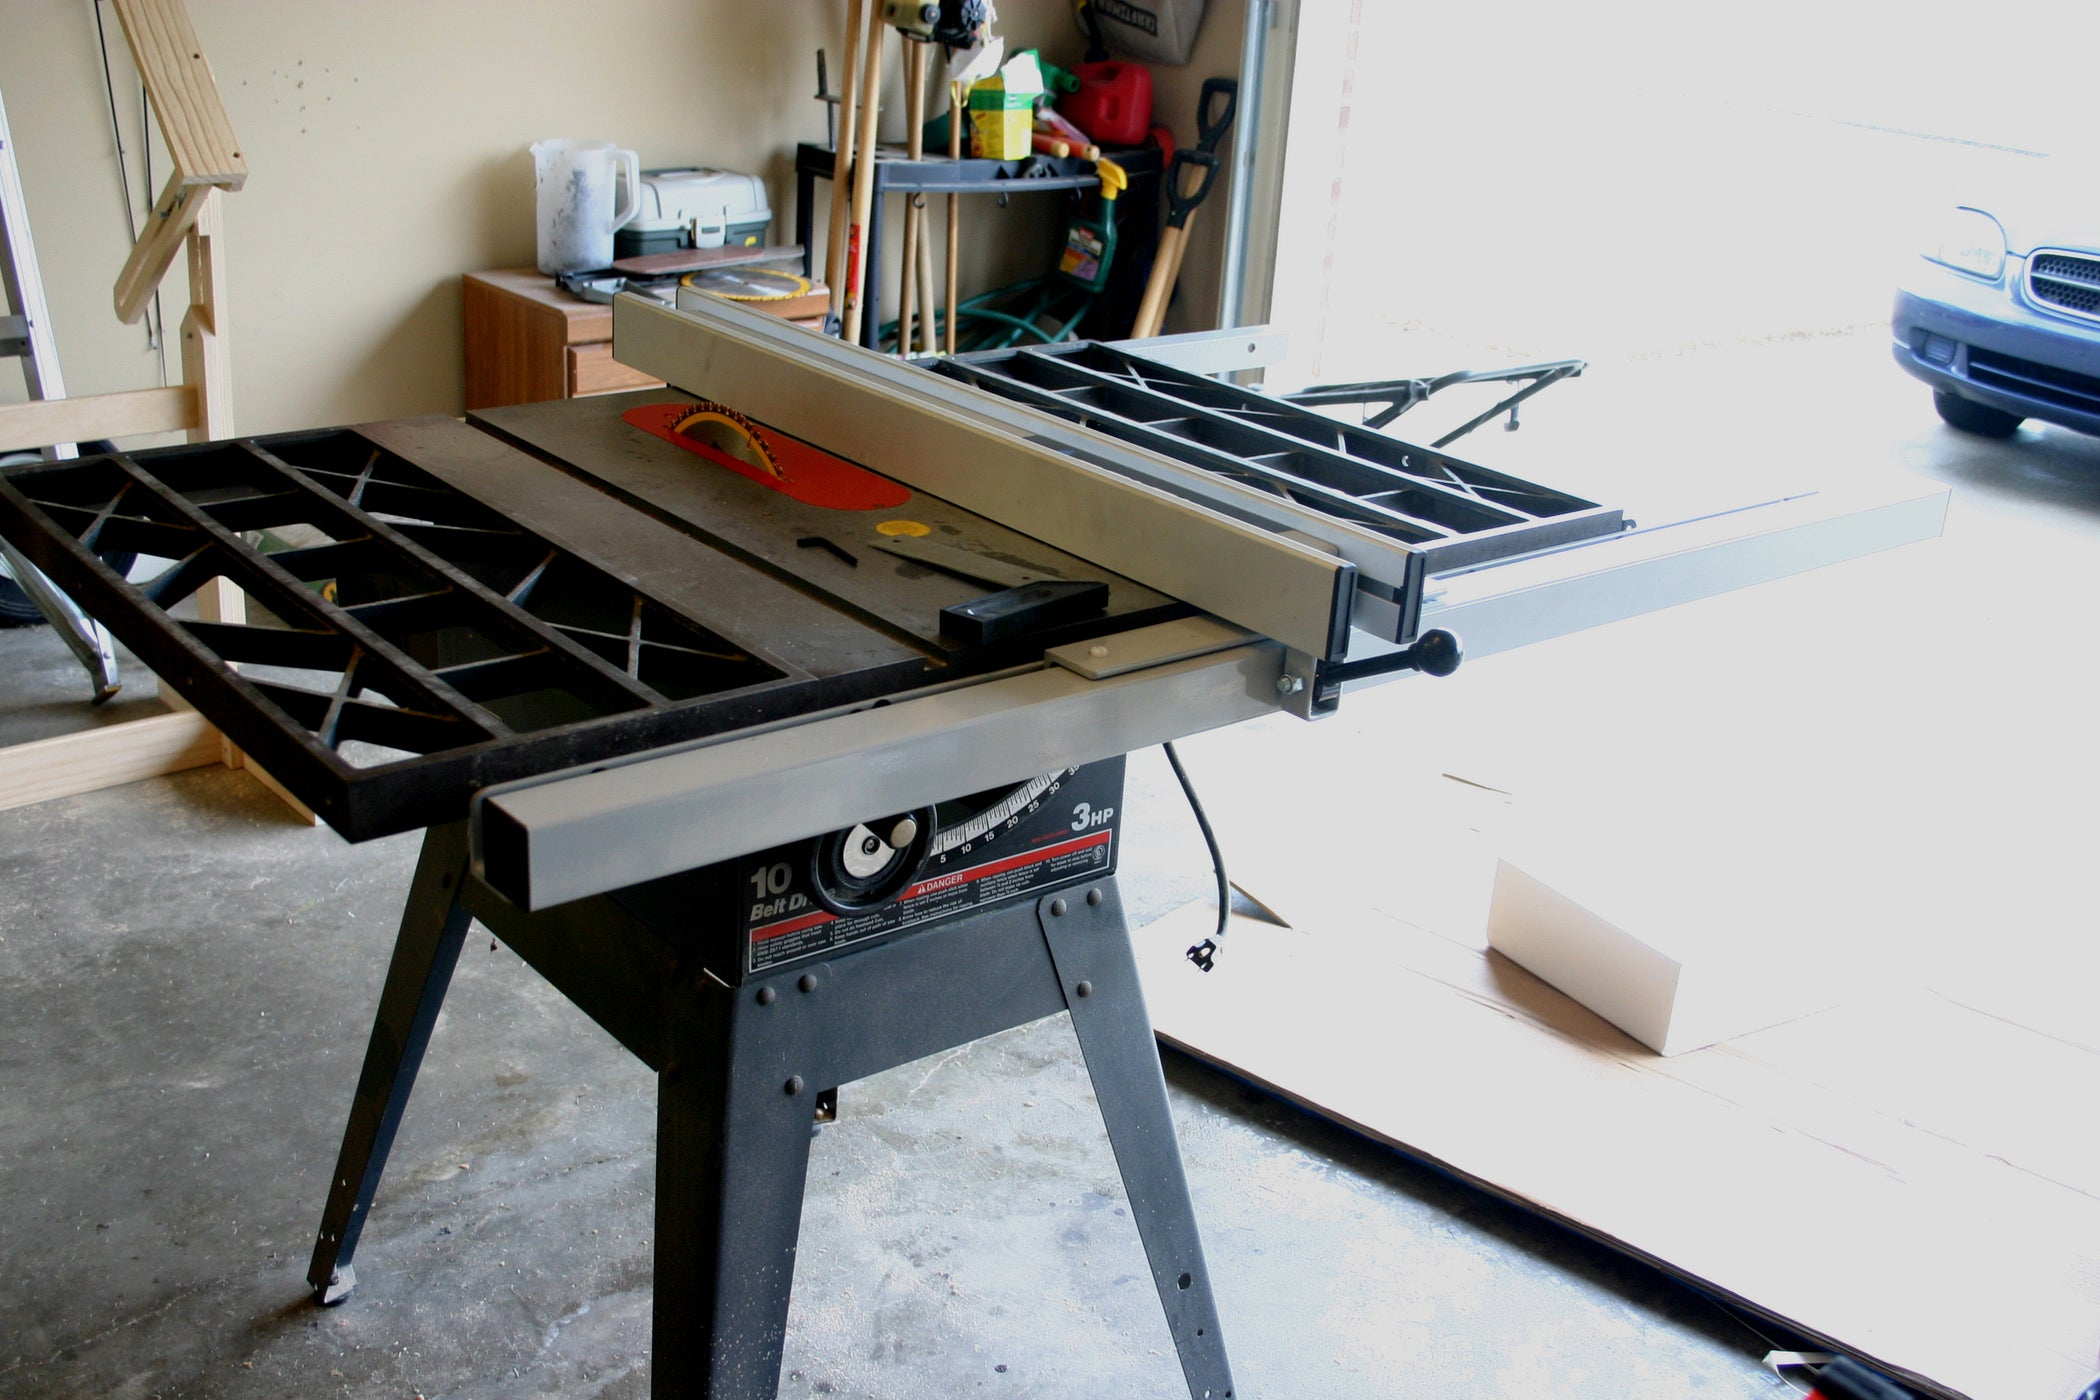 Retrofitting A Delta T2 Fence To Craftsman Table Saw 7 Steps On Off Switch Wiring Diagram